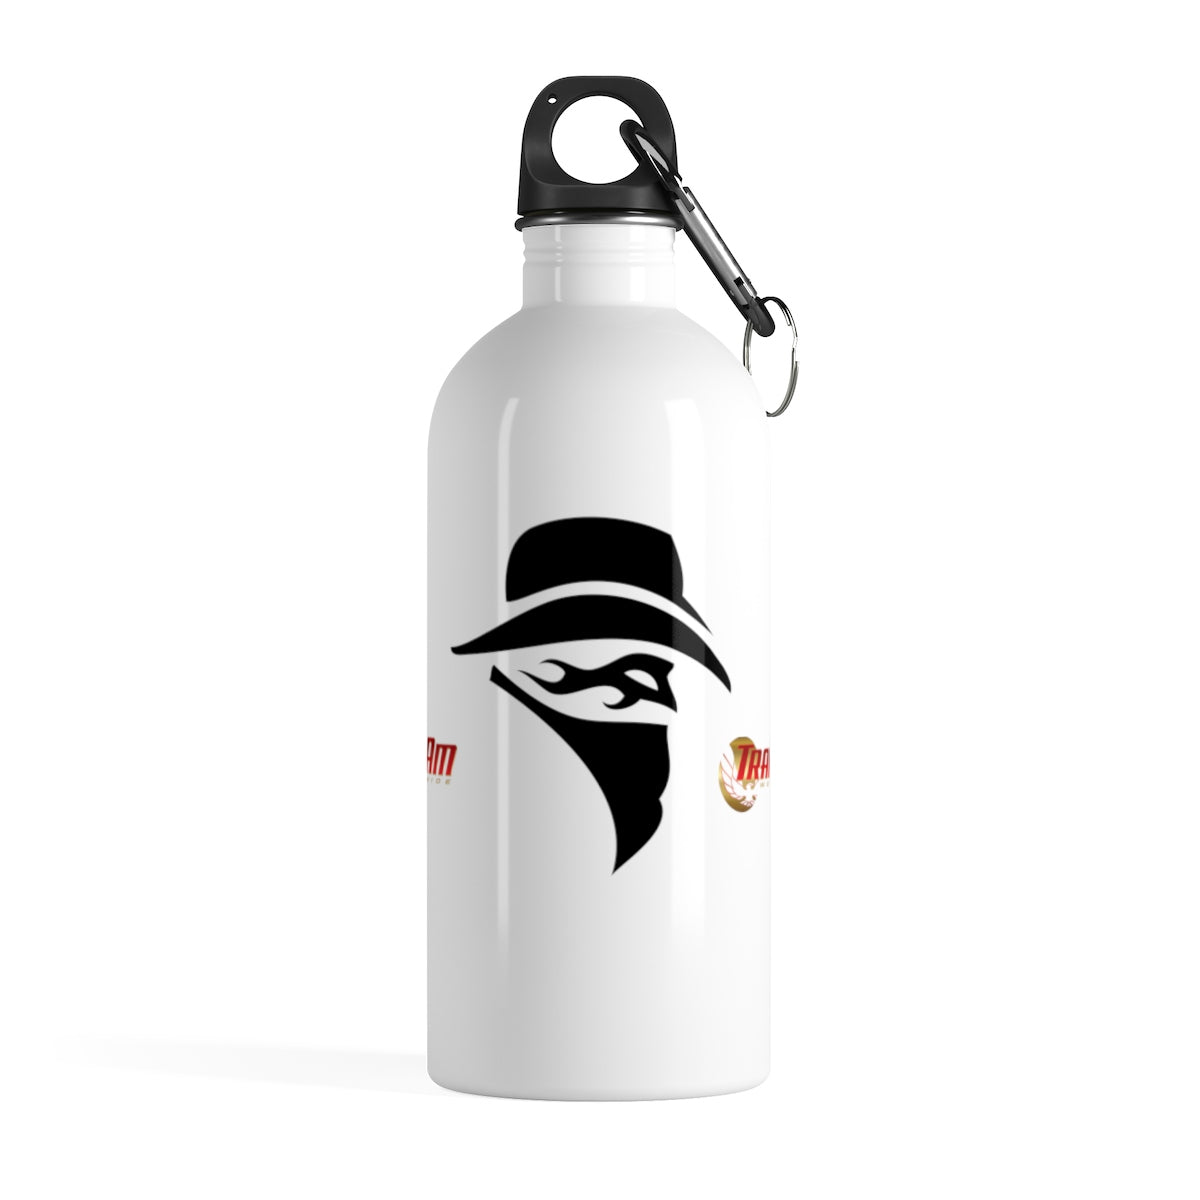 Bandit Stainless Steel Water Bottle